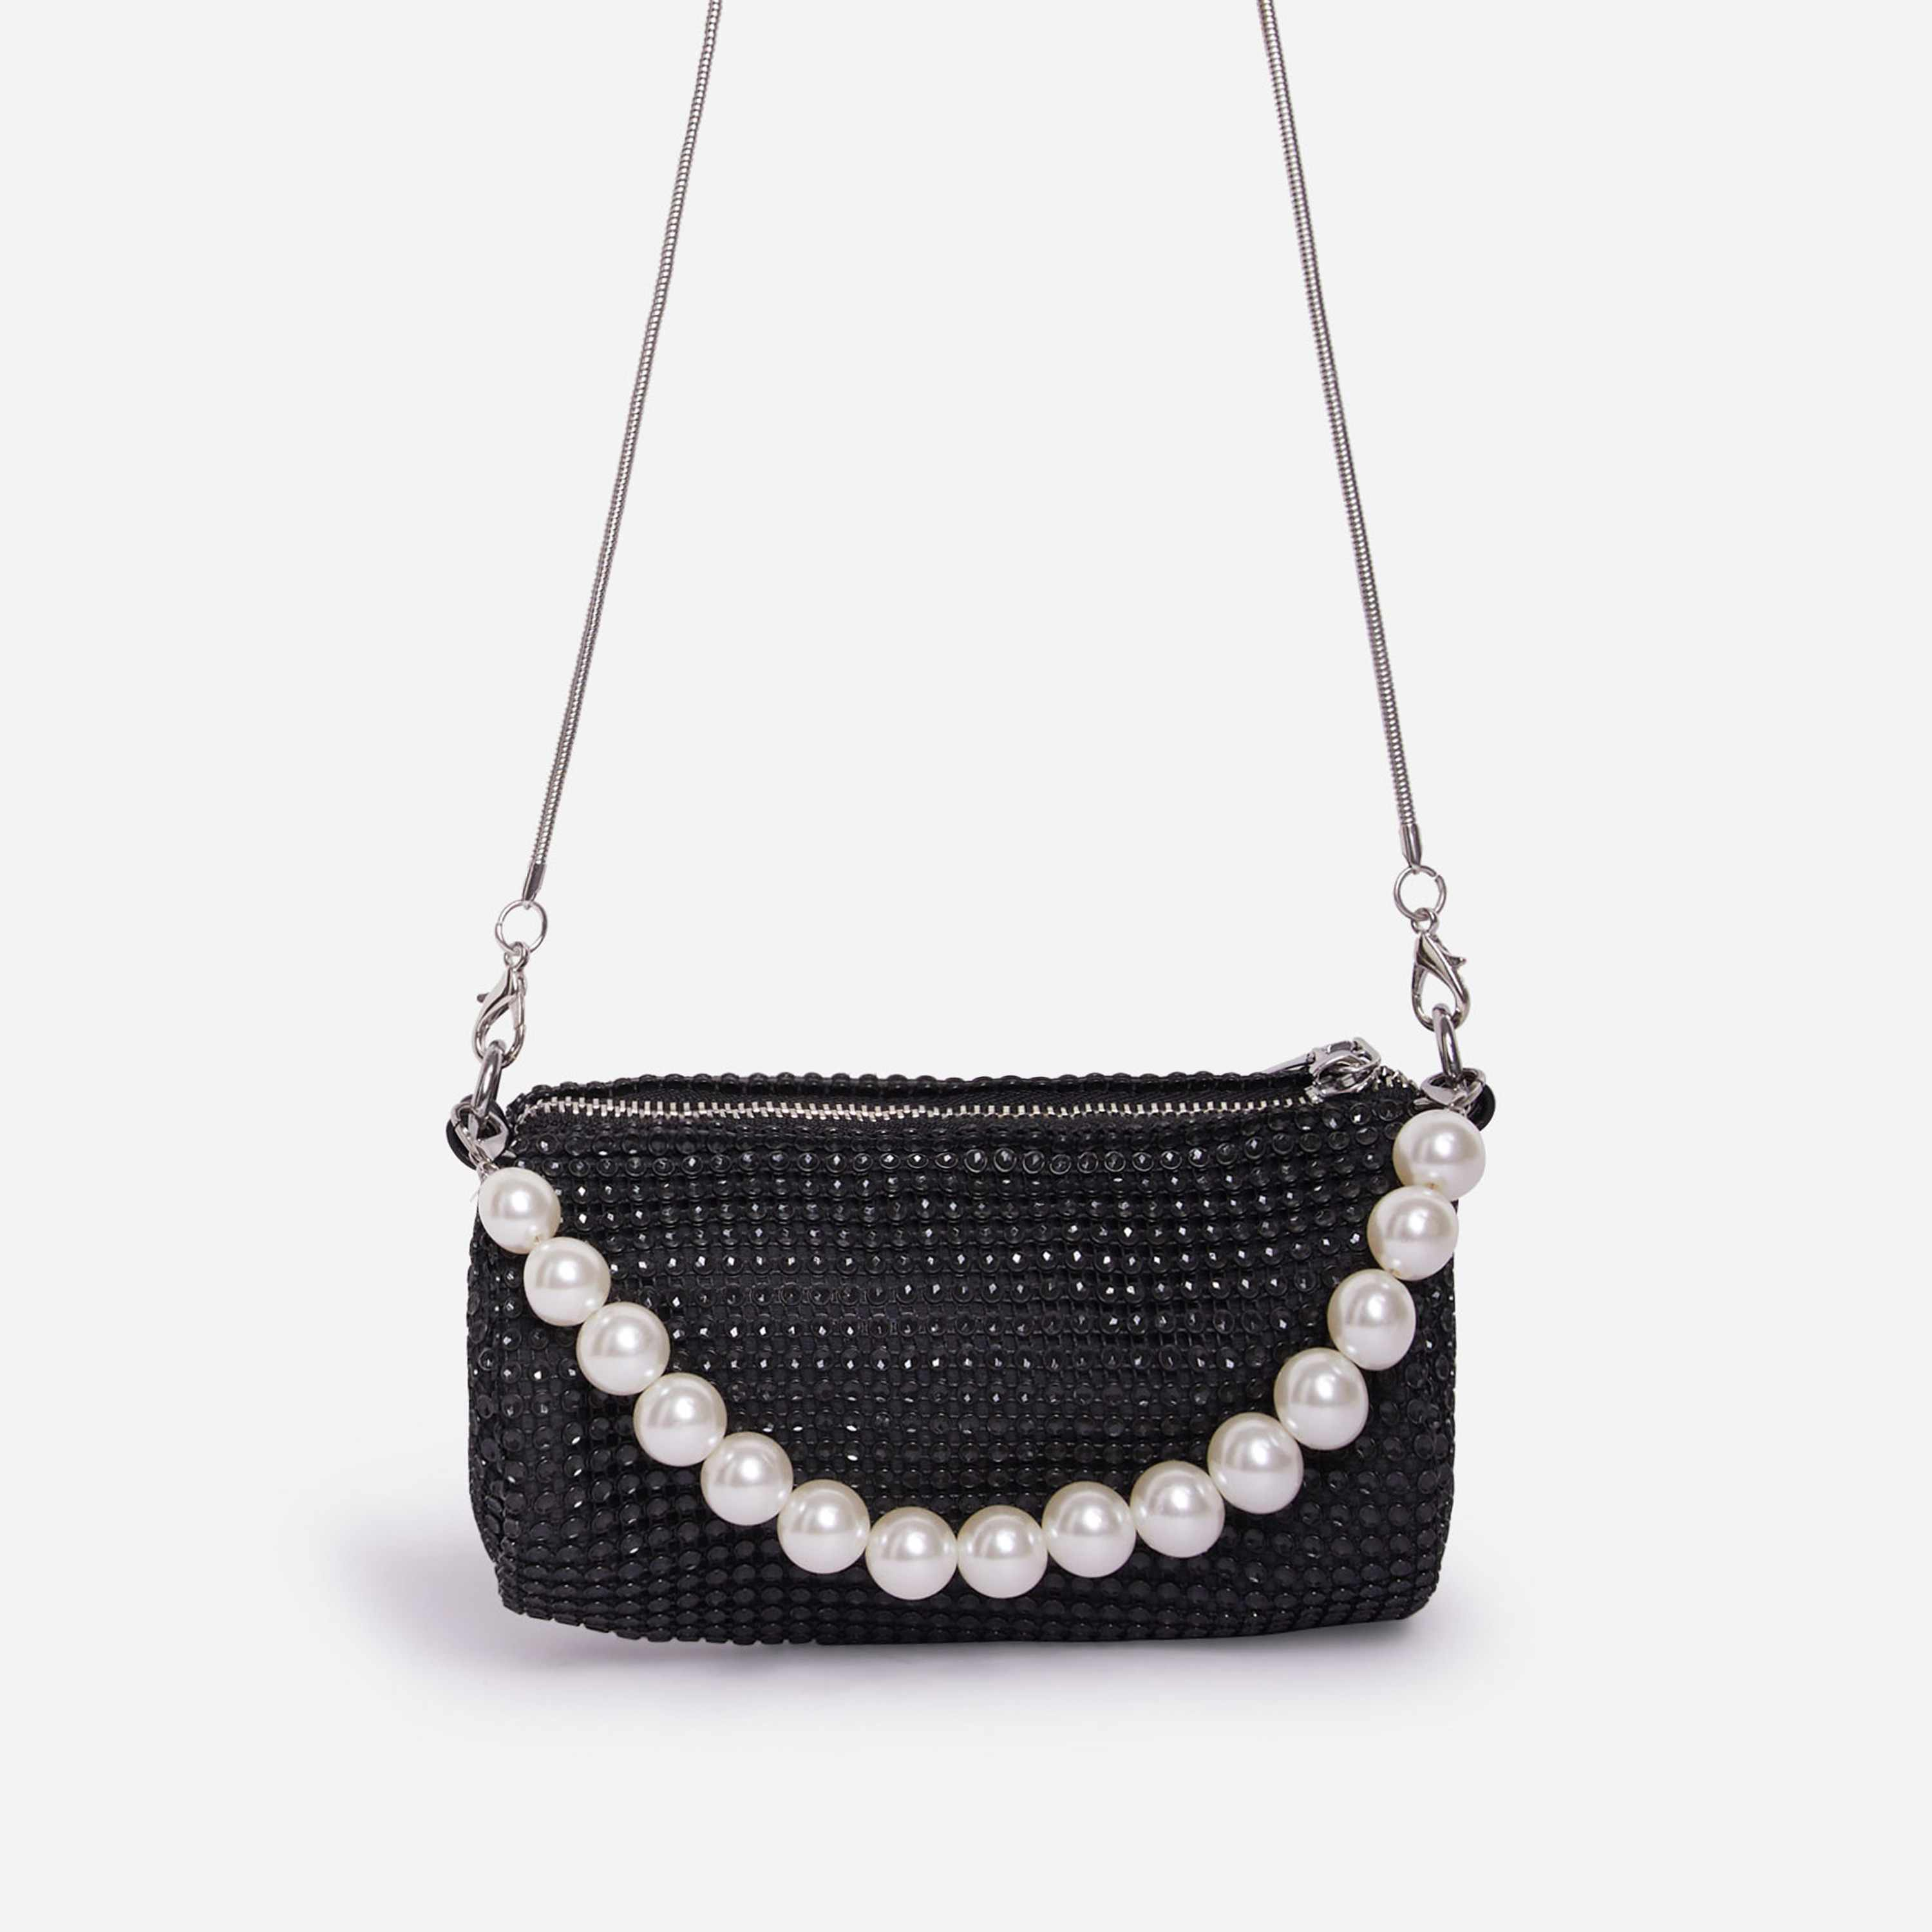 Alana Pearl Detail Baguette Bag In Black